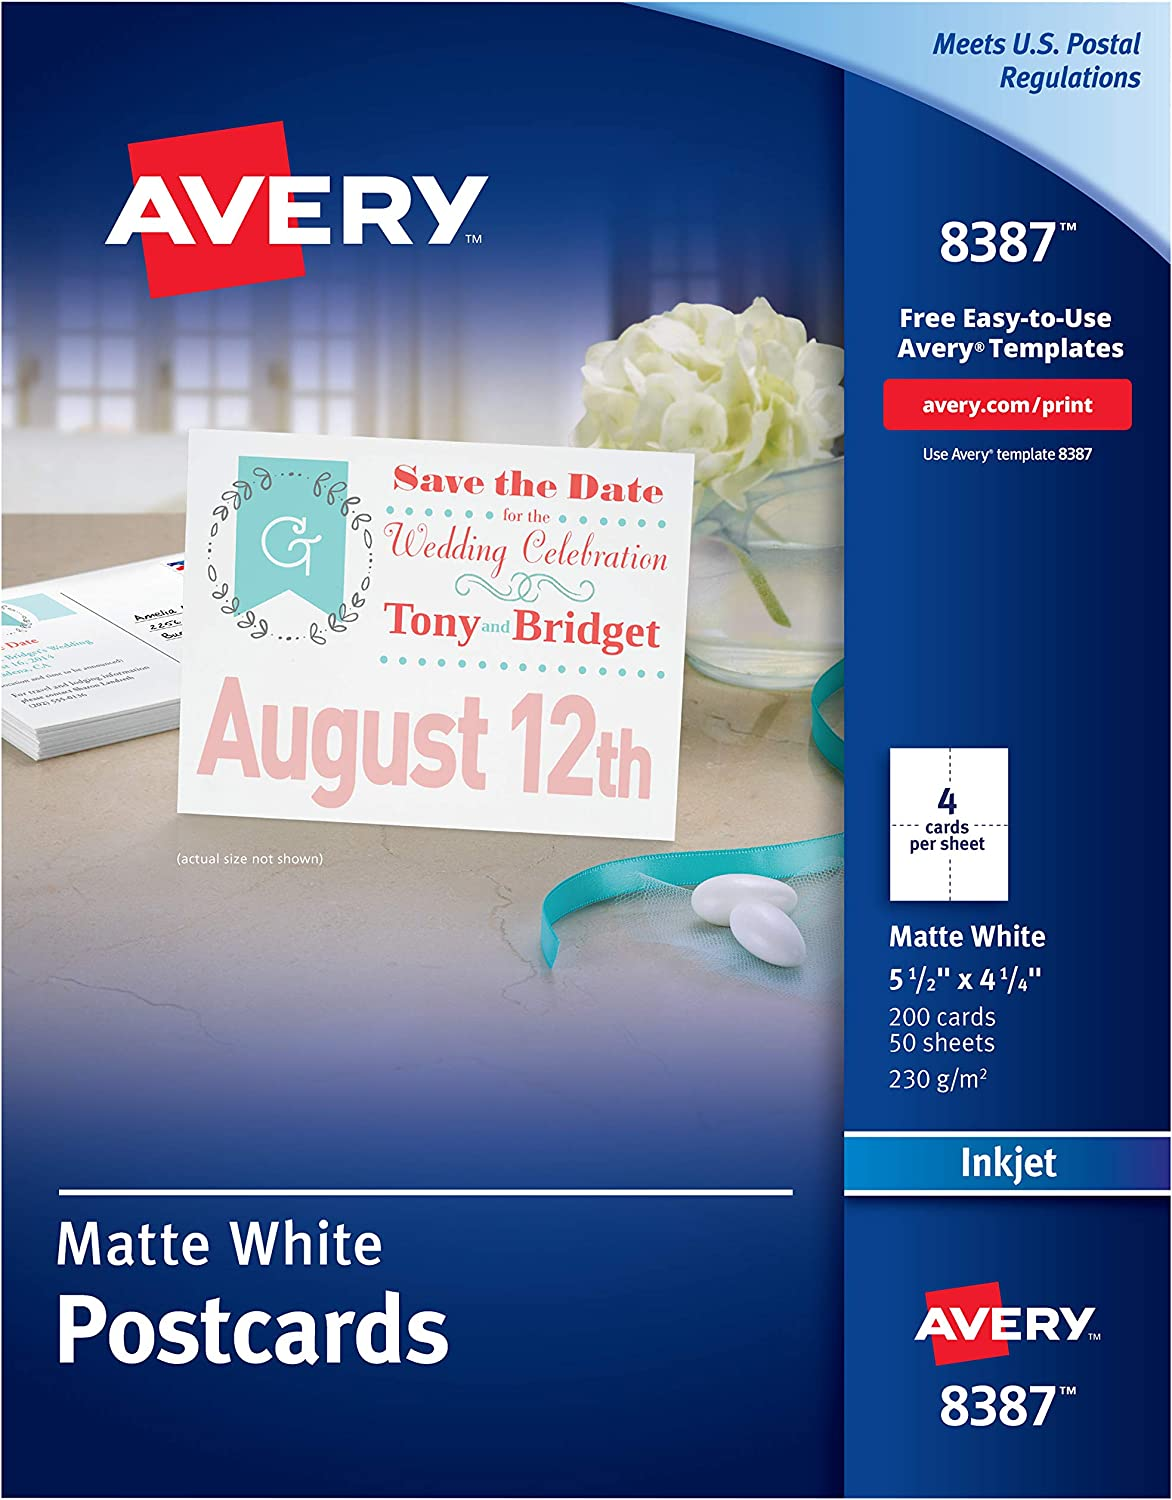 Avery Printable Cards, Inkjet Printers, 200 Cards, 4.25 x 5.5, U.S. Post Card Size (8387)